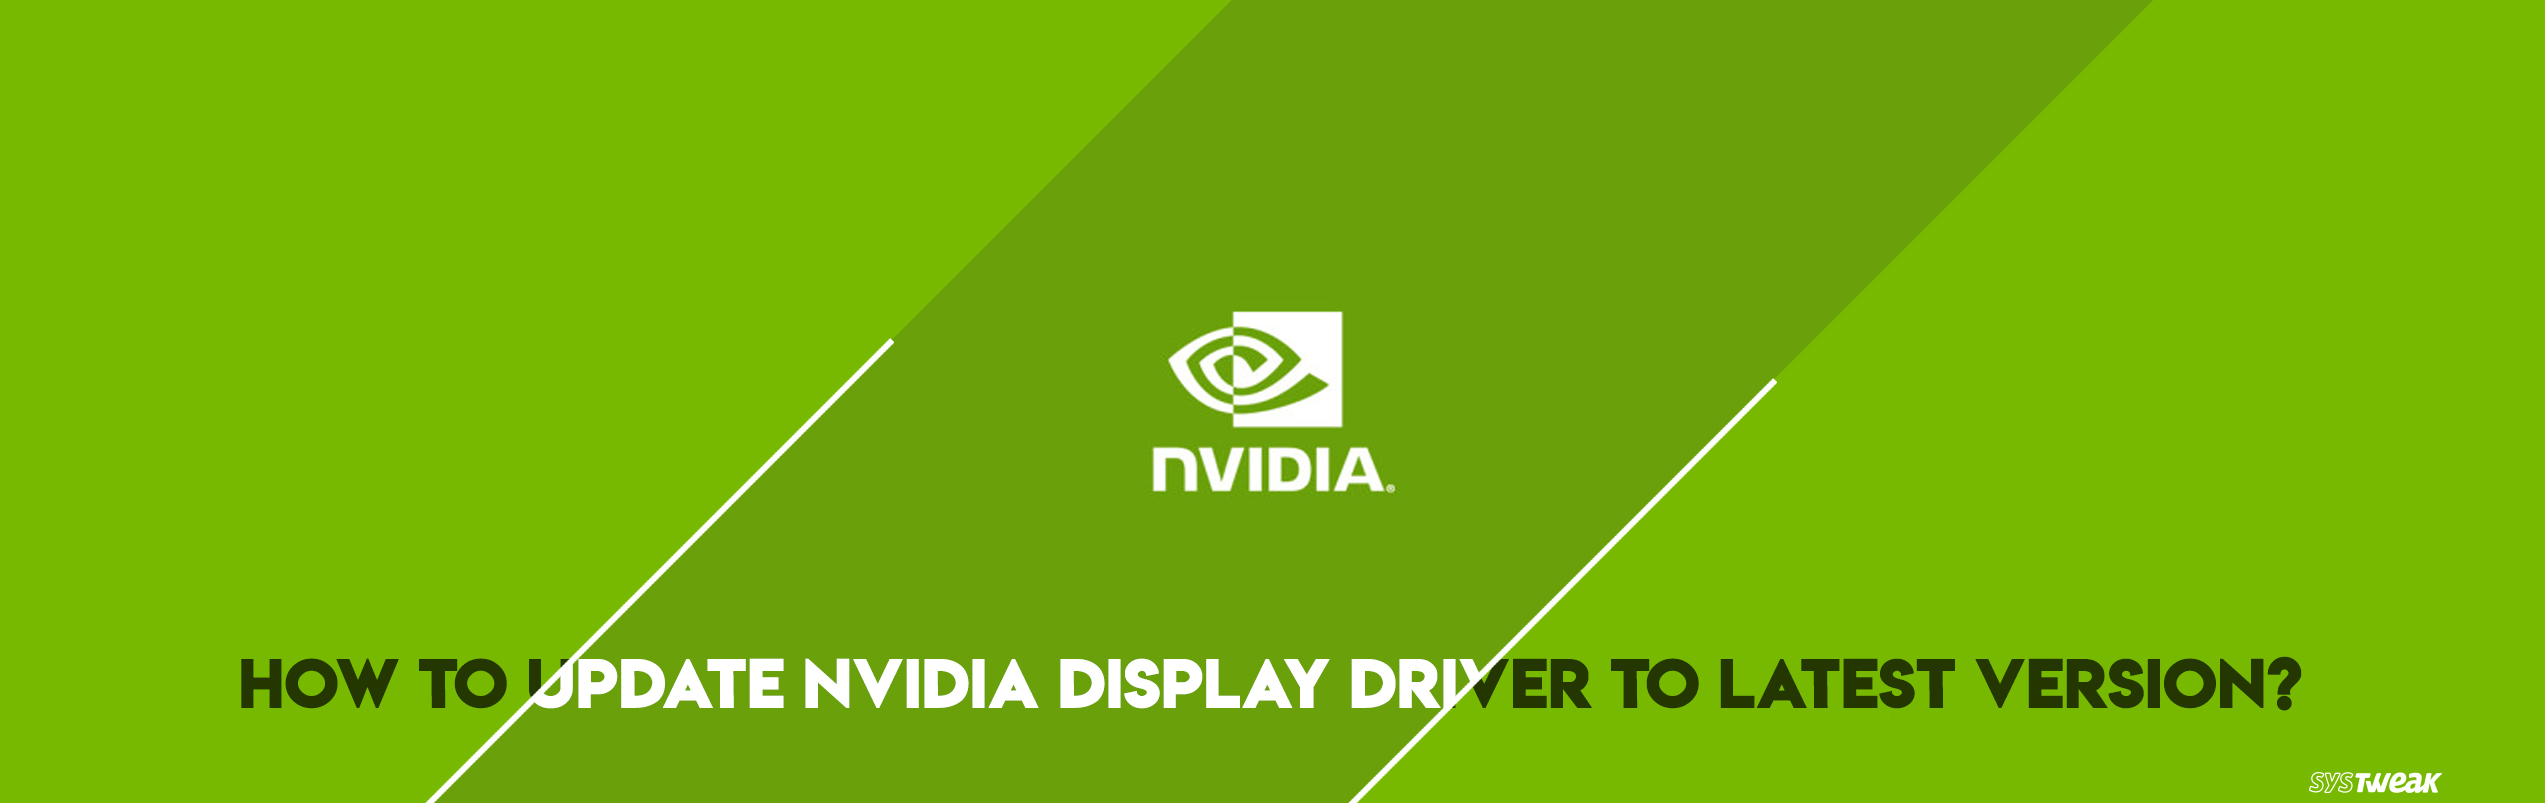 How To Update NVIDIA Display Driver To Latest Version?